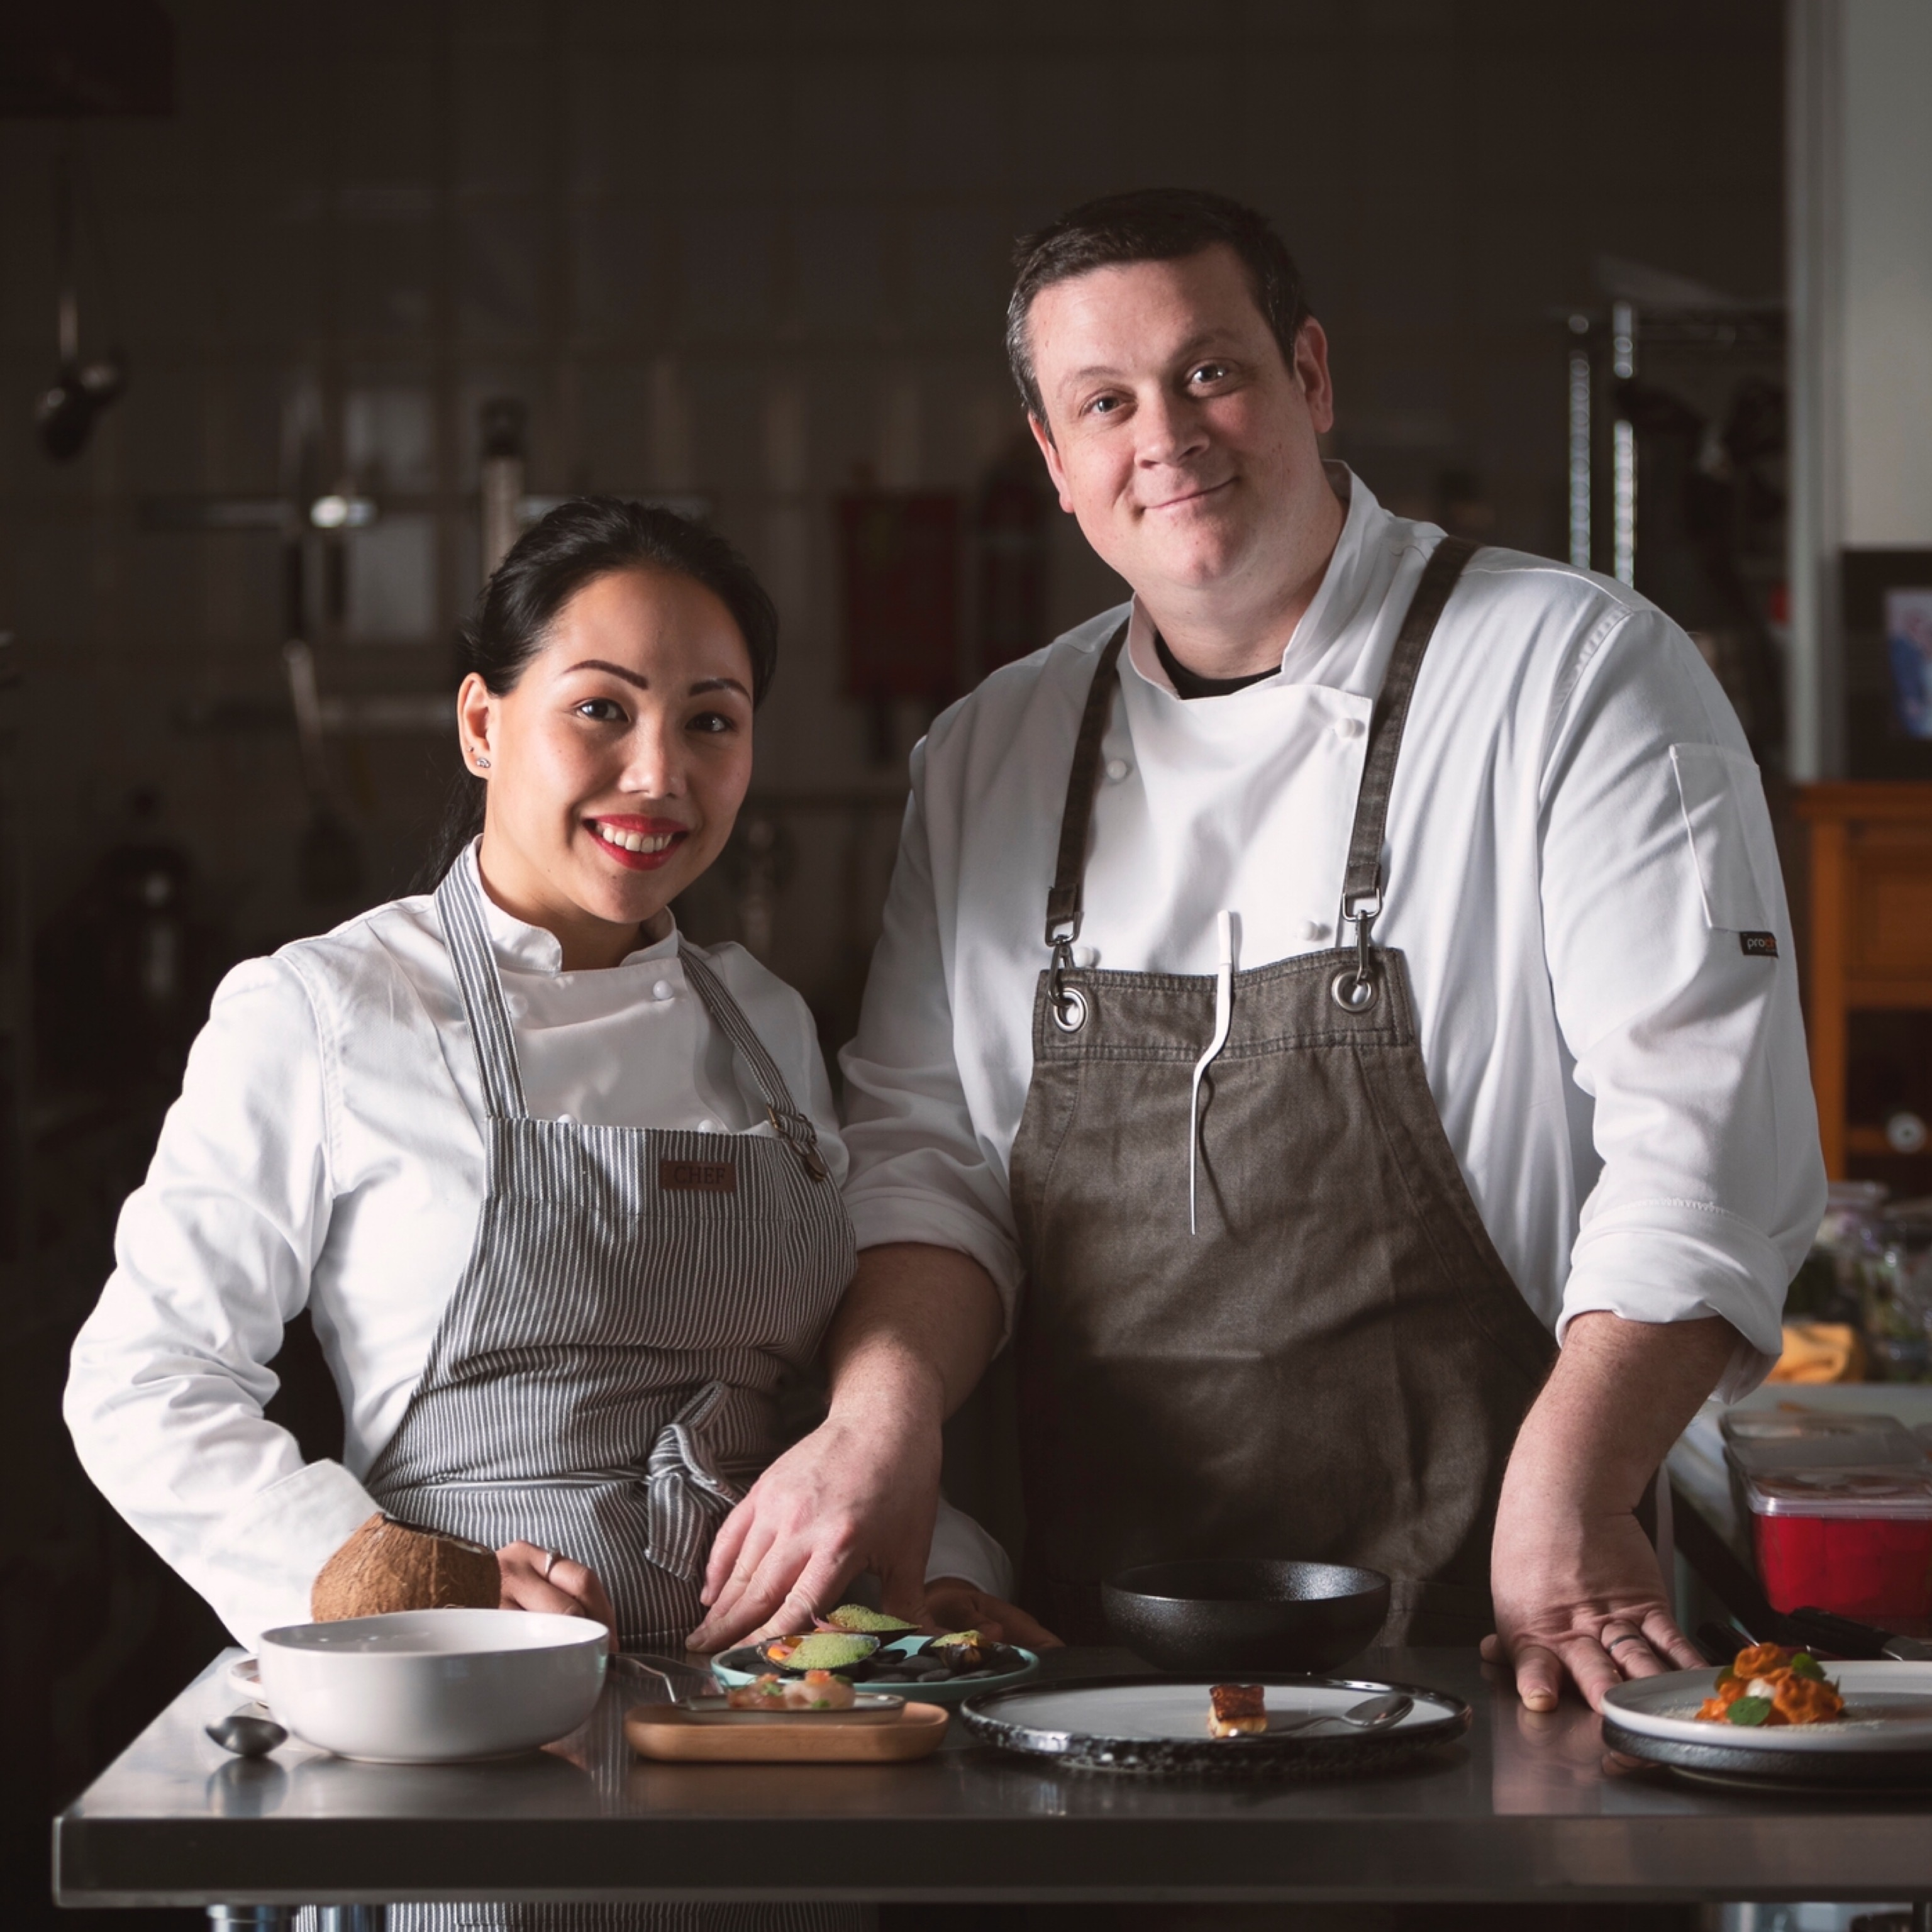 Mr and Mrs Chef